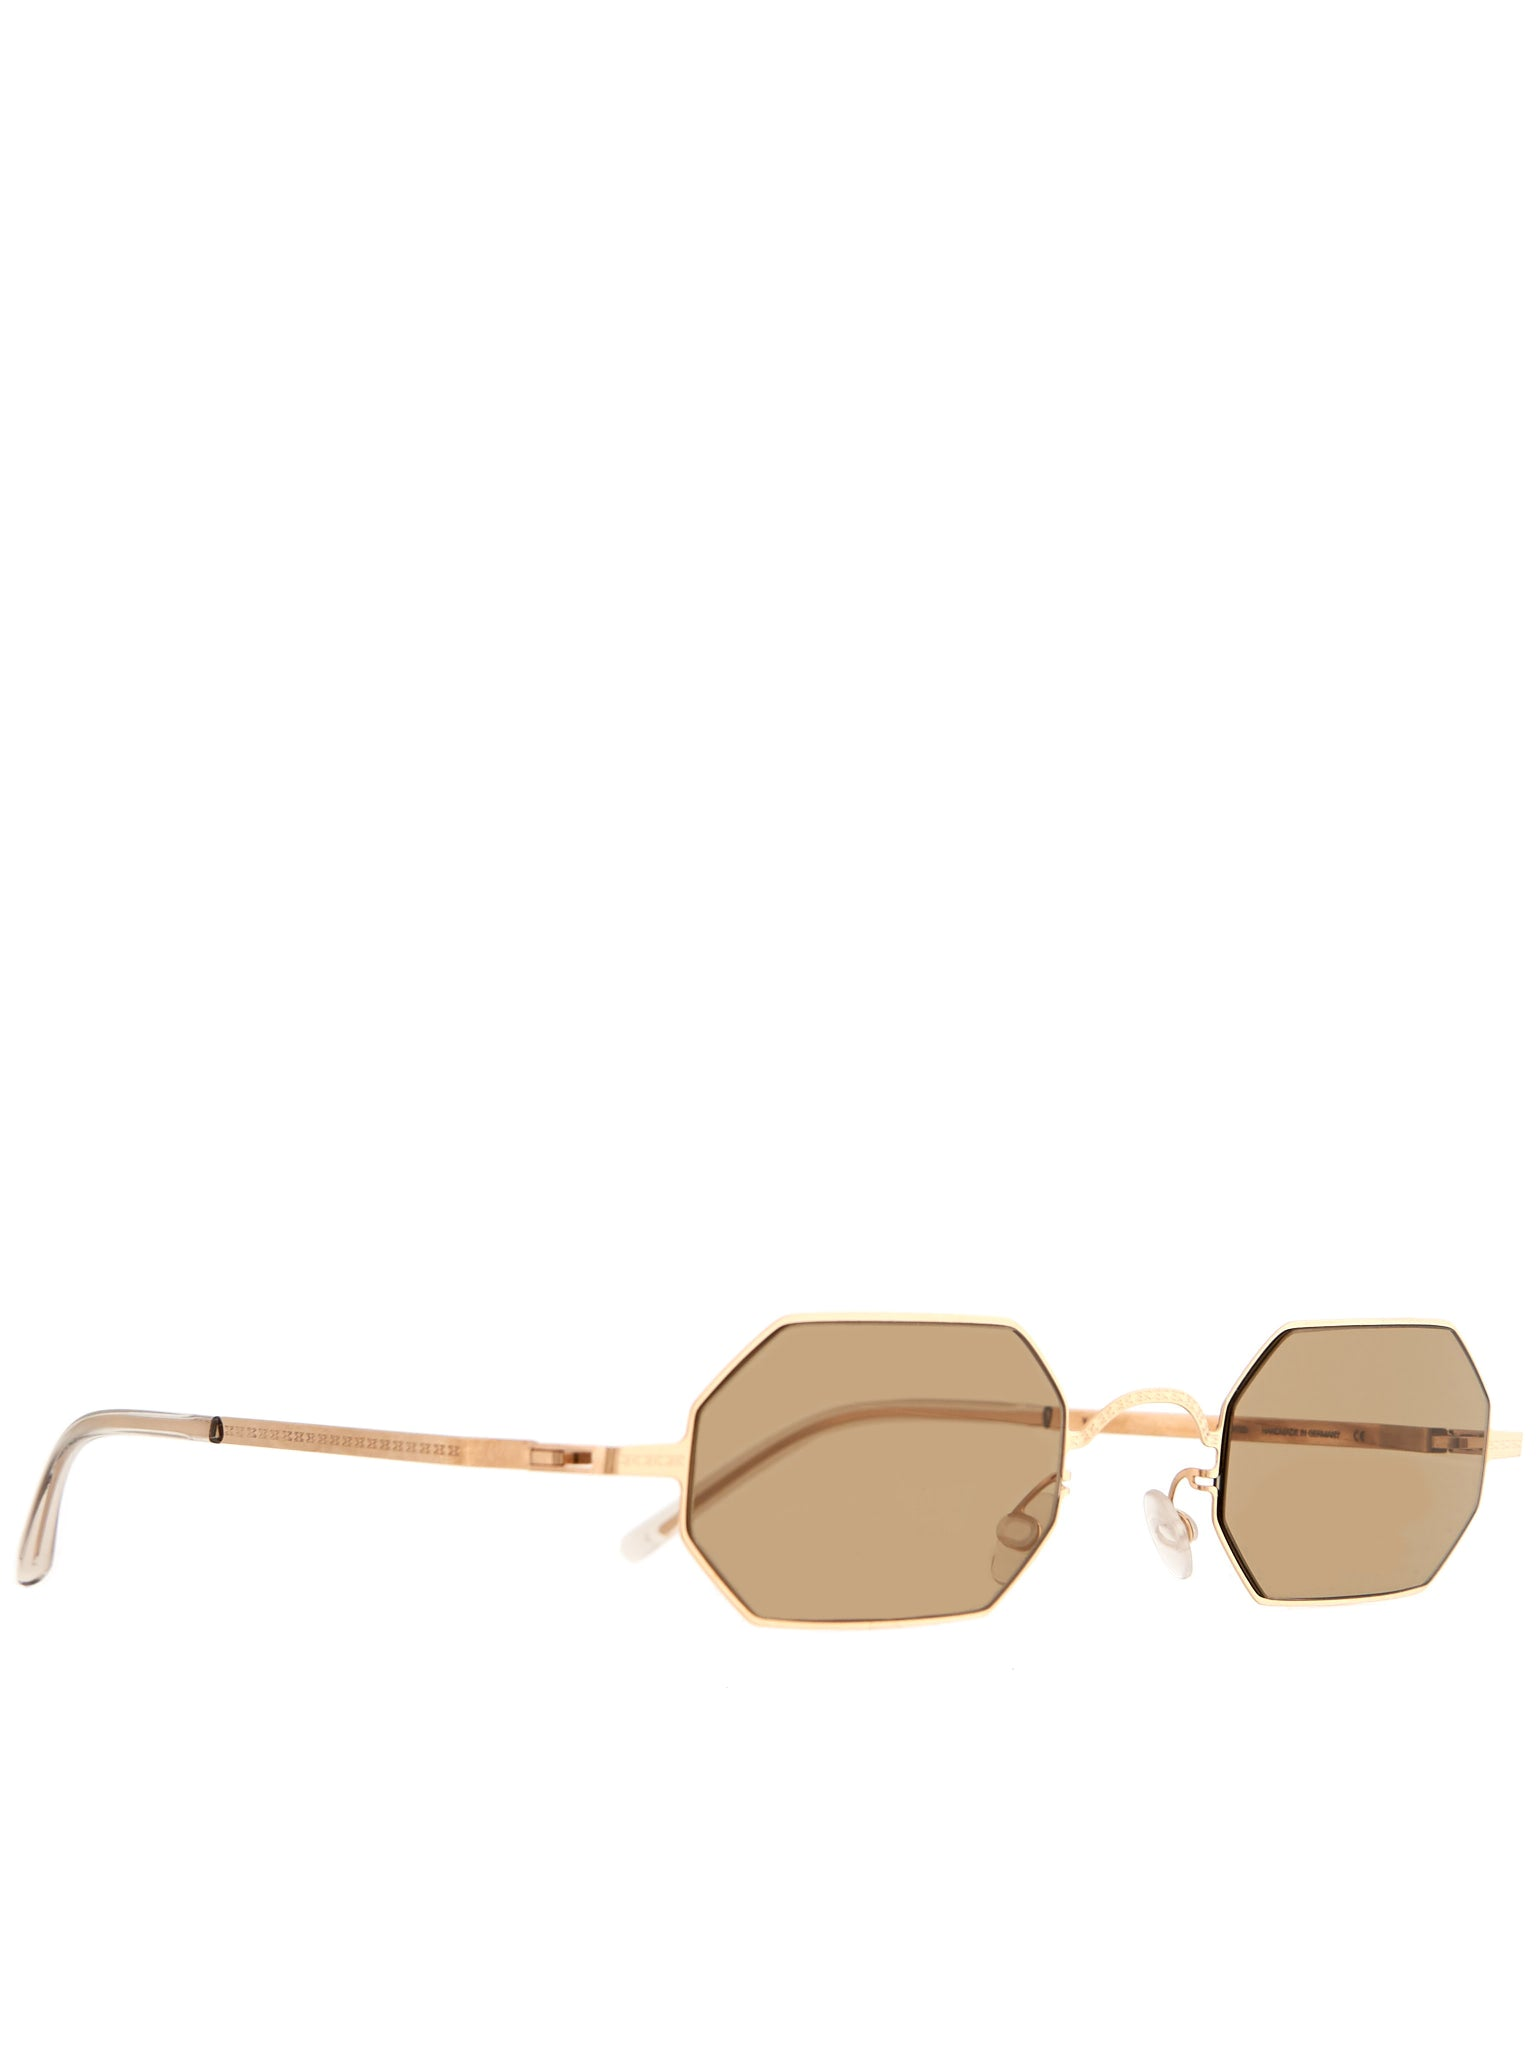 'MMCRAFT004' Sunglasses (MMCRAFT004-GLOSSYGOLD-BROWN)